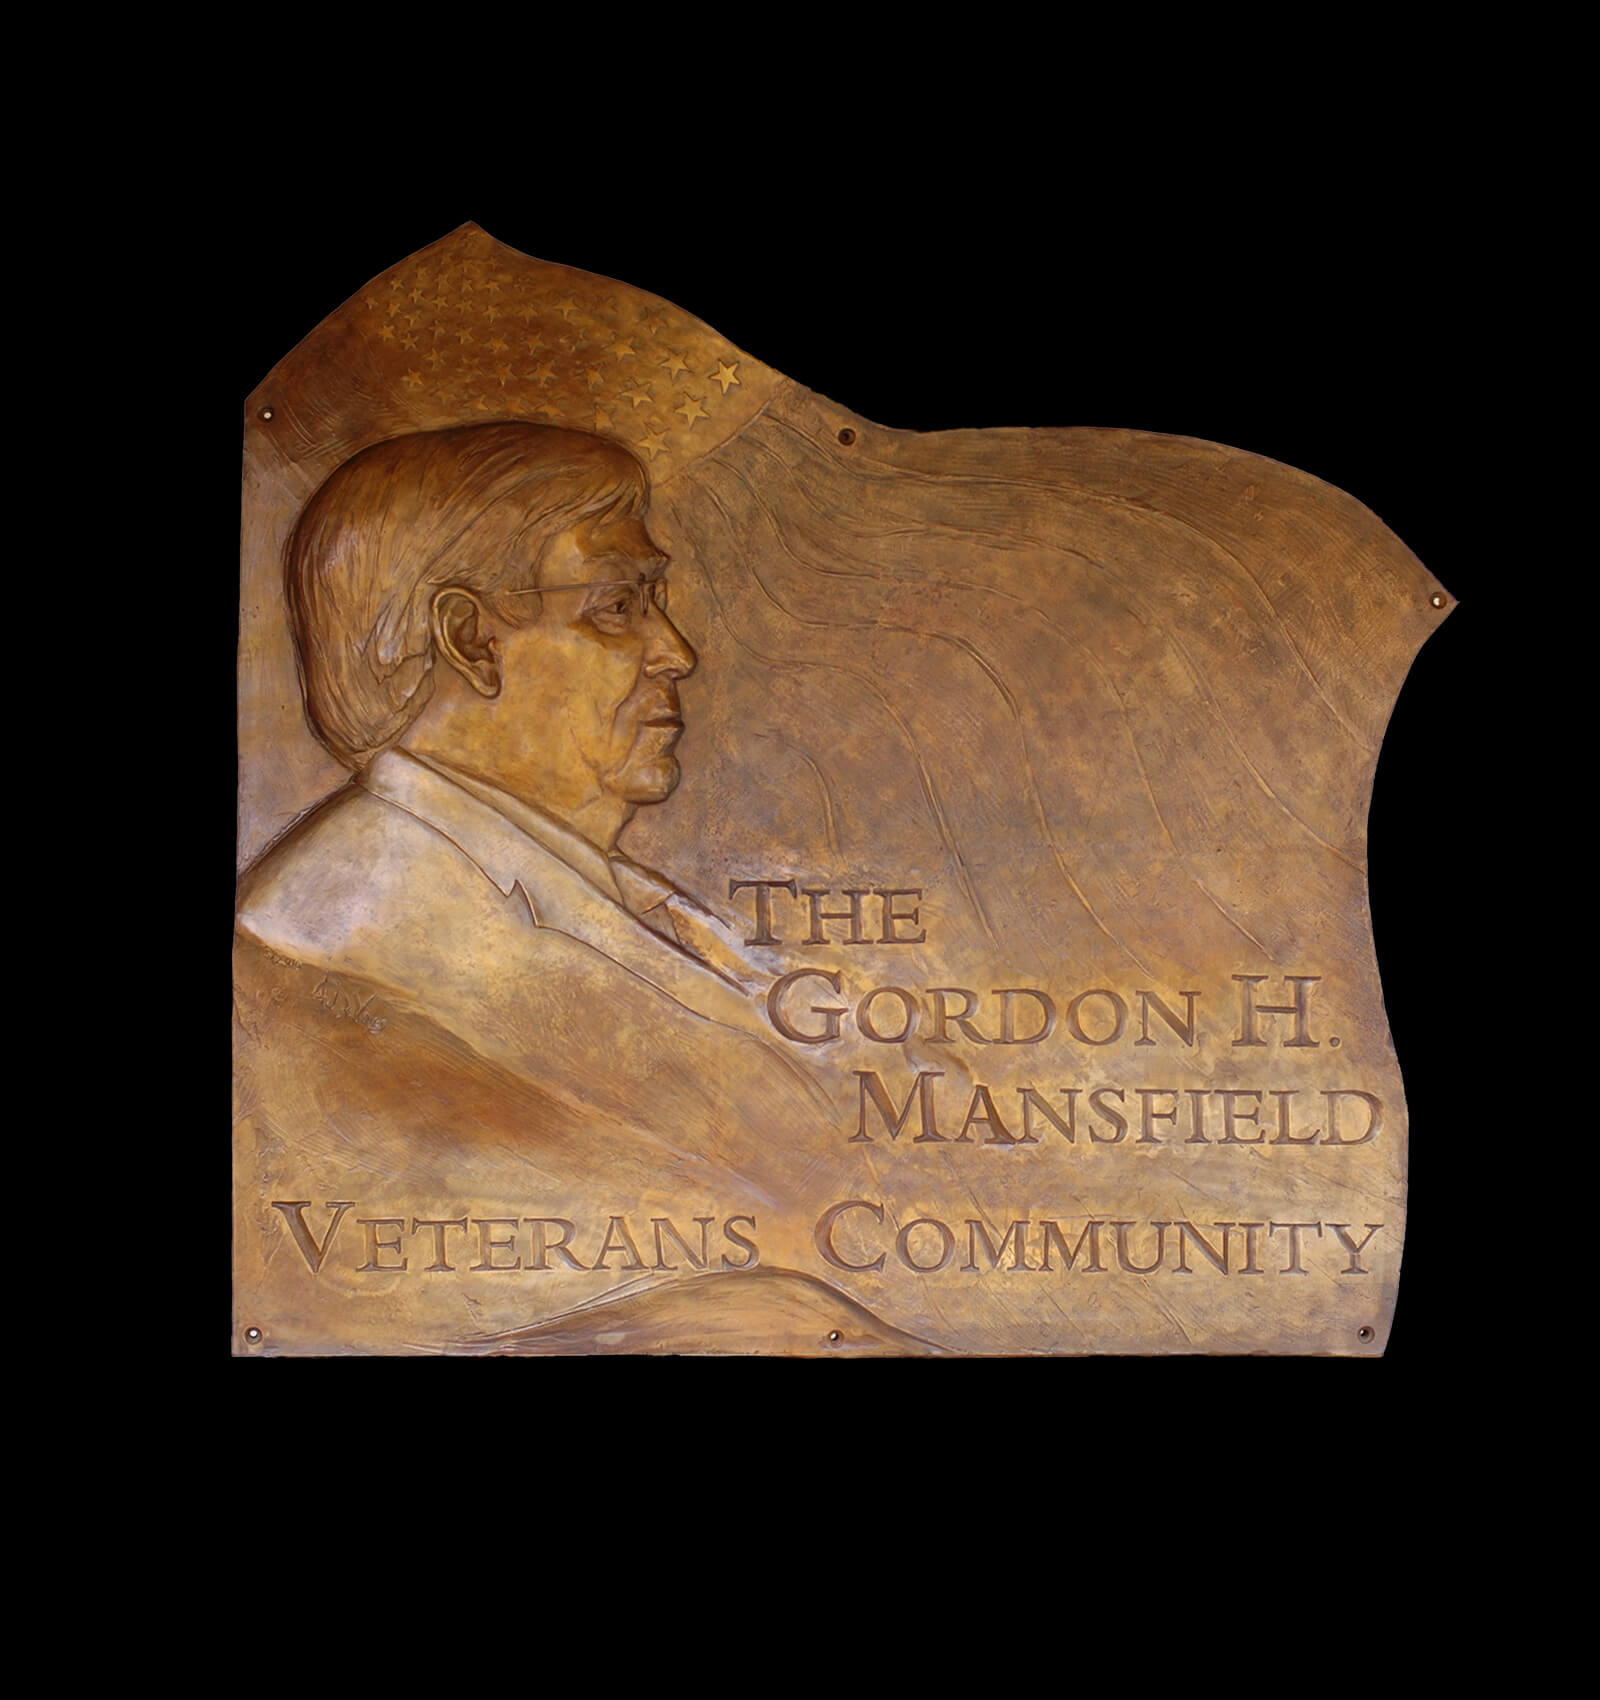 Bronze relief portrait of Gordon Mansfield by sculptor Andrew DeVries commissioned by Andrew DeVries installed at Soldier On Pittsfield Massachusetts